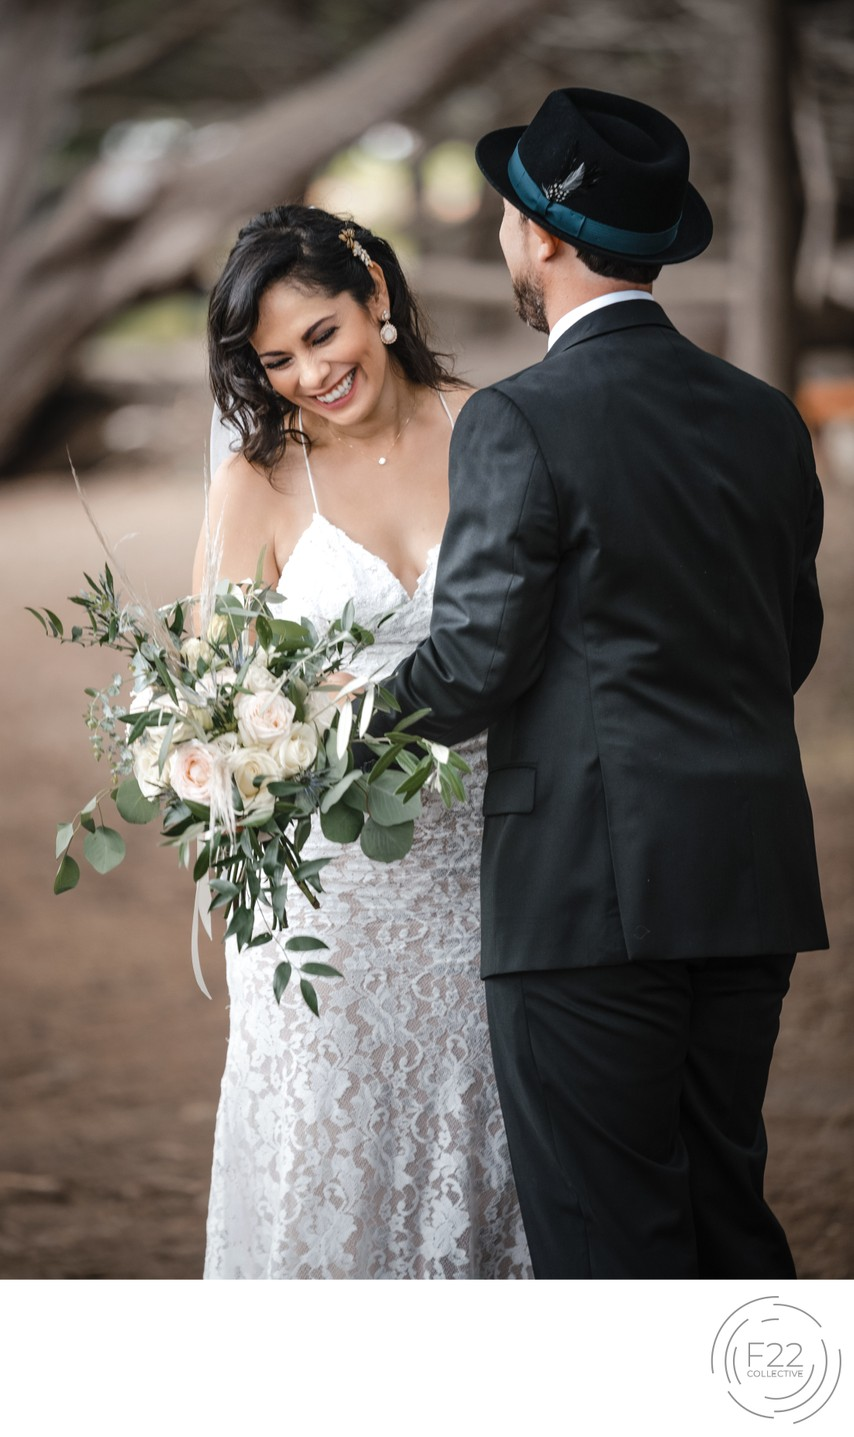 Best Wedding Photographers Sacramento Intimate Moments